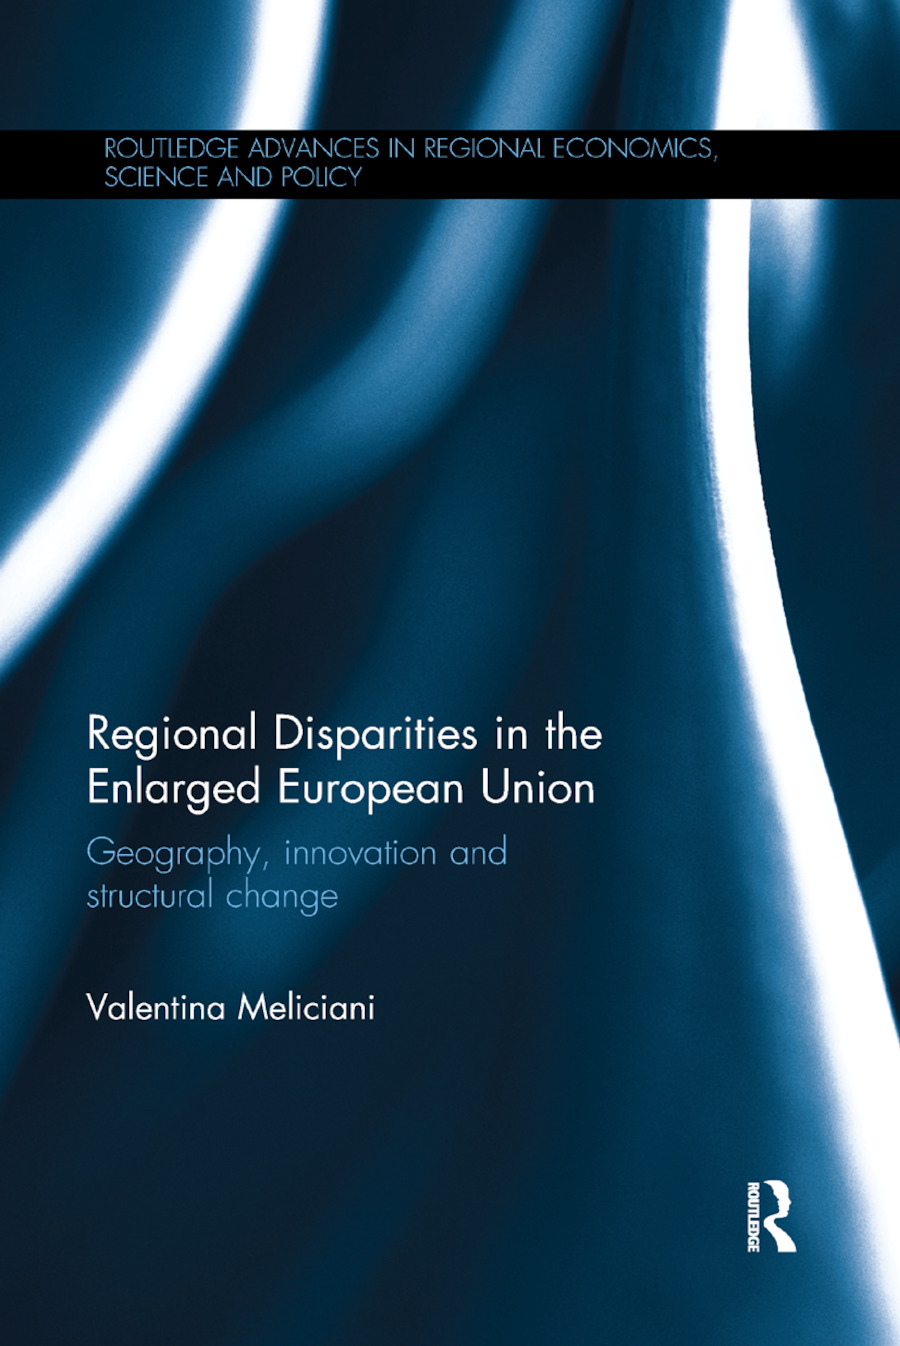 Regional Disparities in the Enlarged European Union: Geography, innovation and structural change book cover